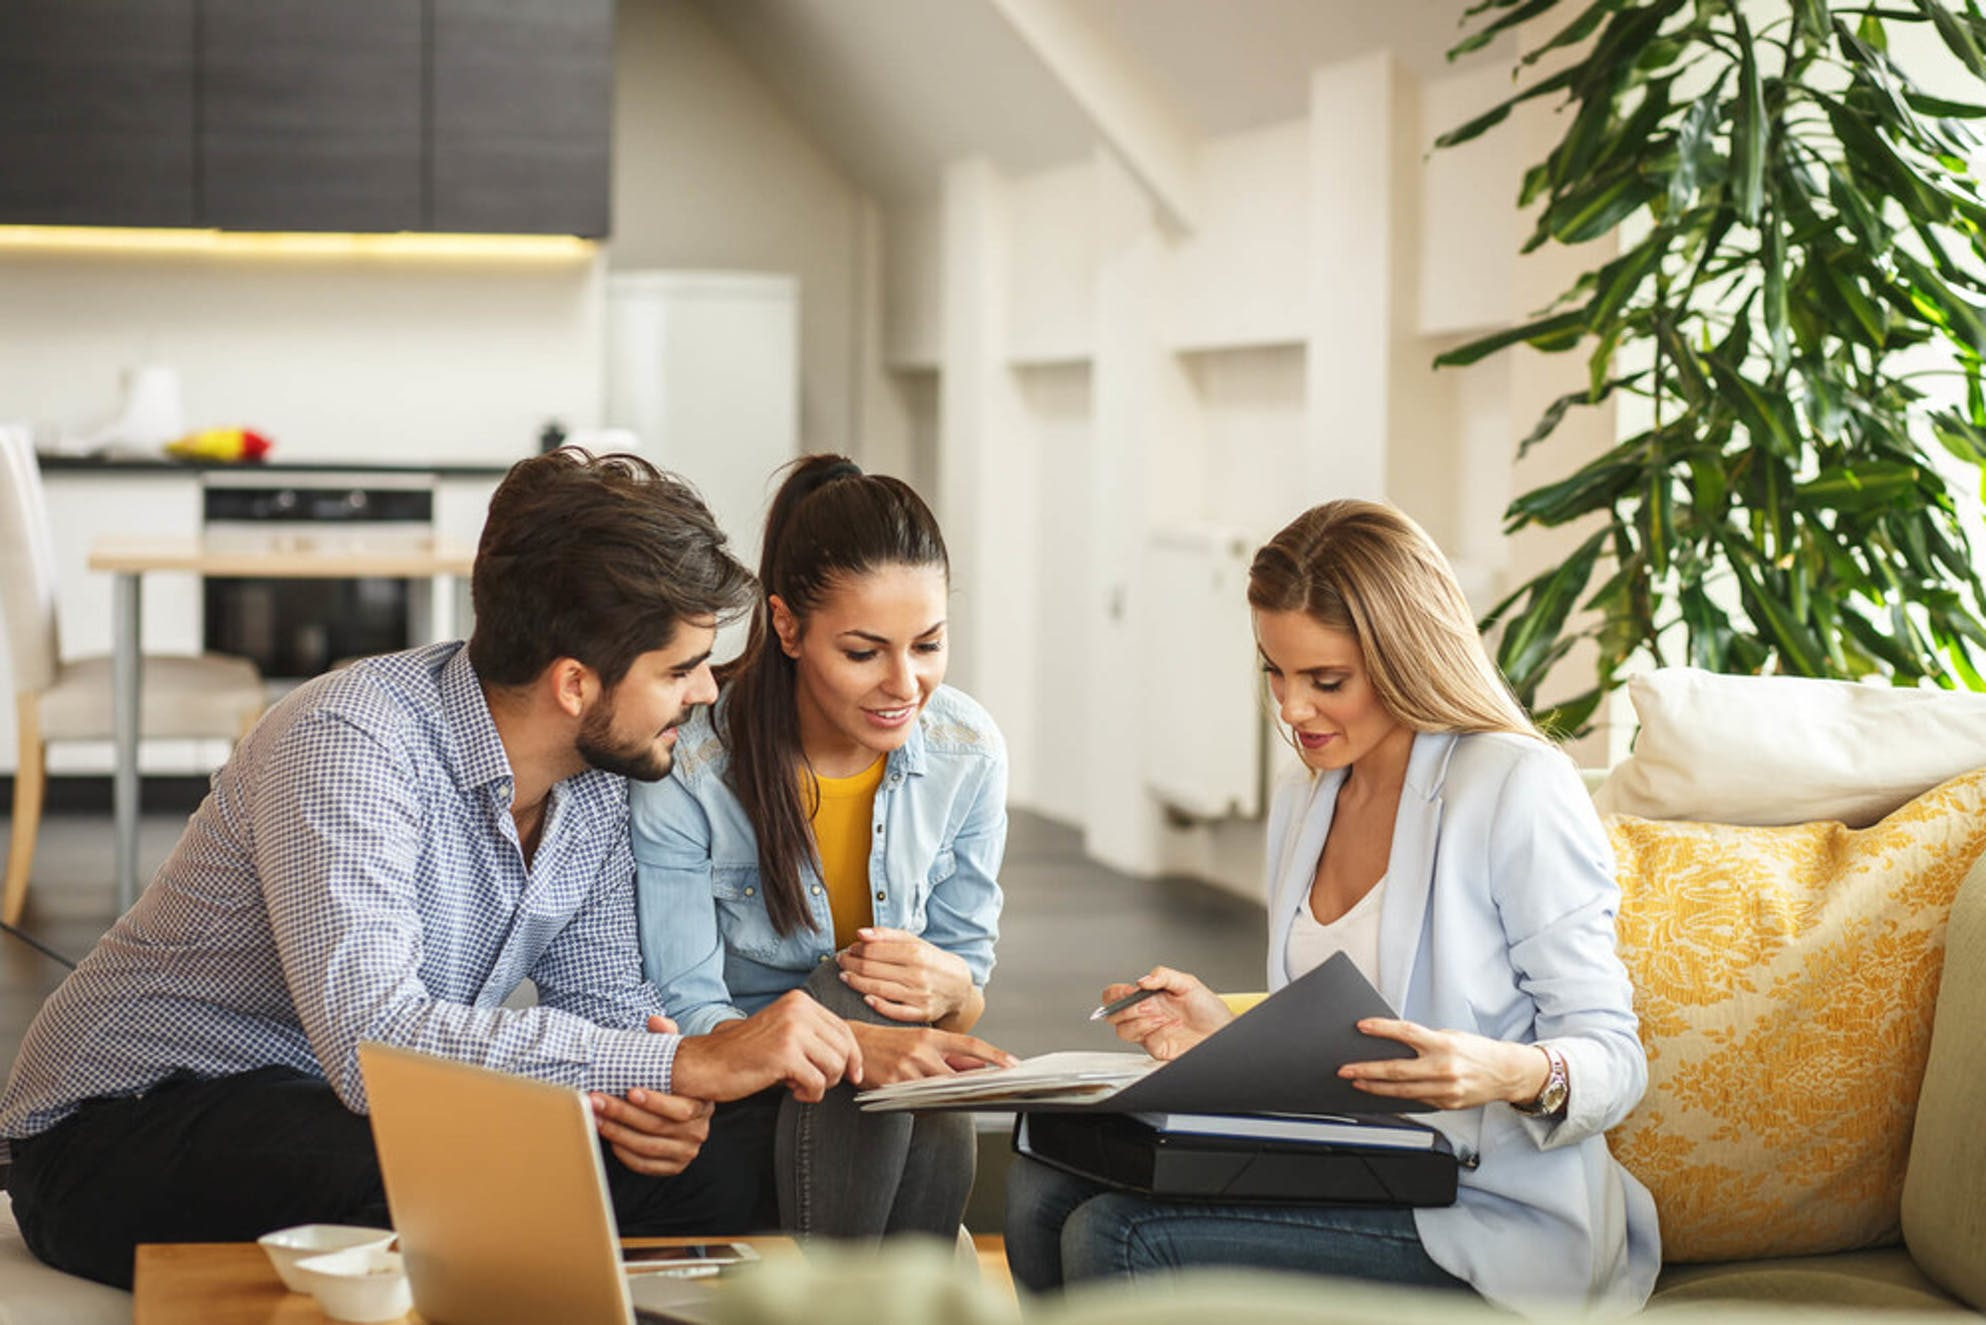 Real estate agent showing various real estate options to the home buyers